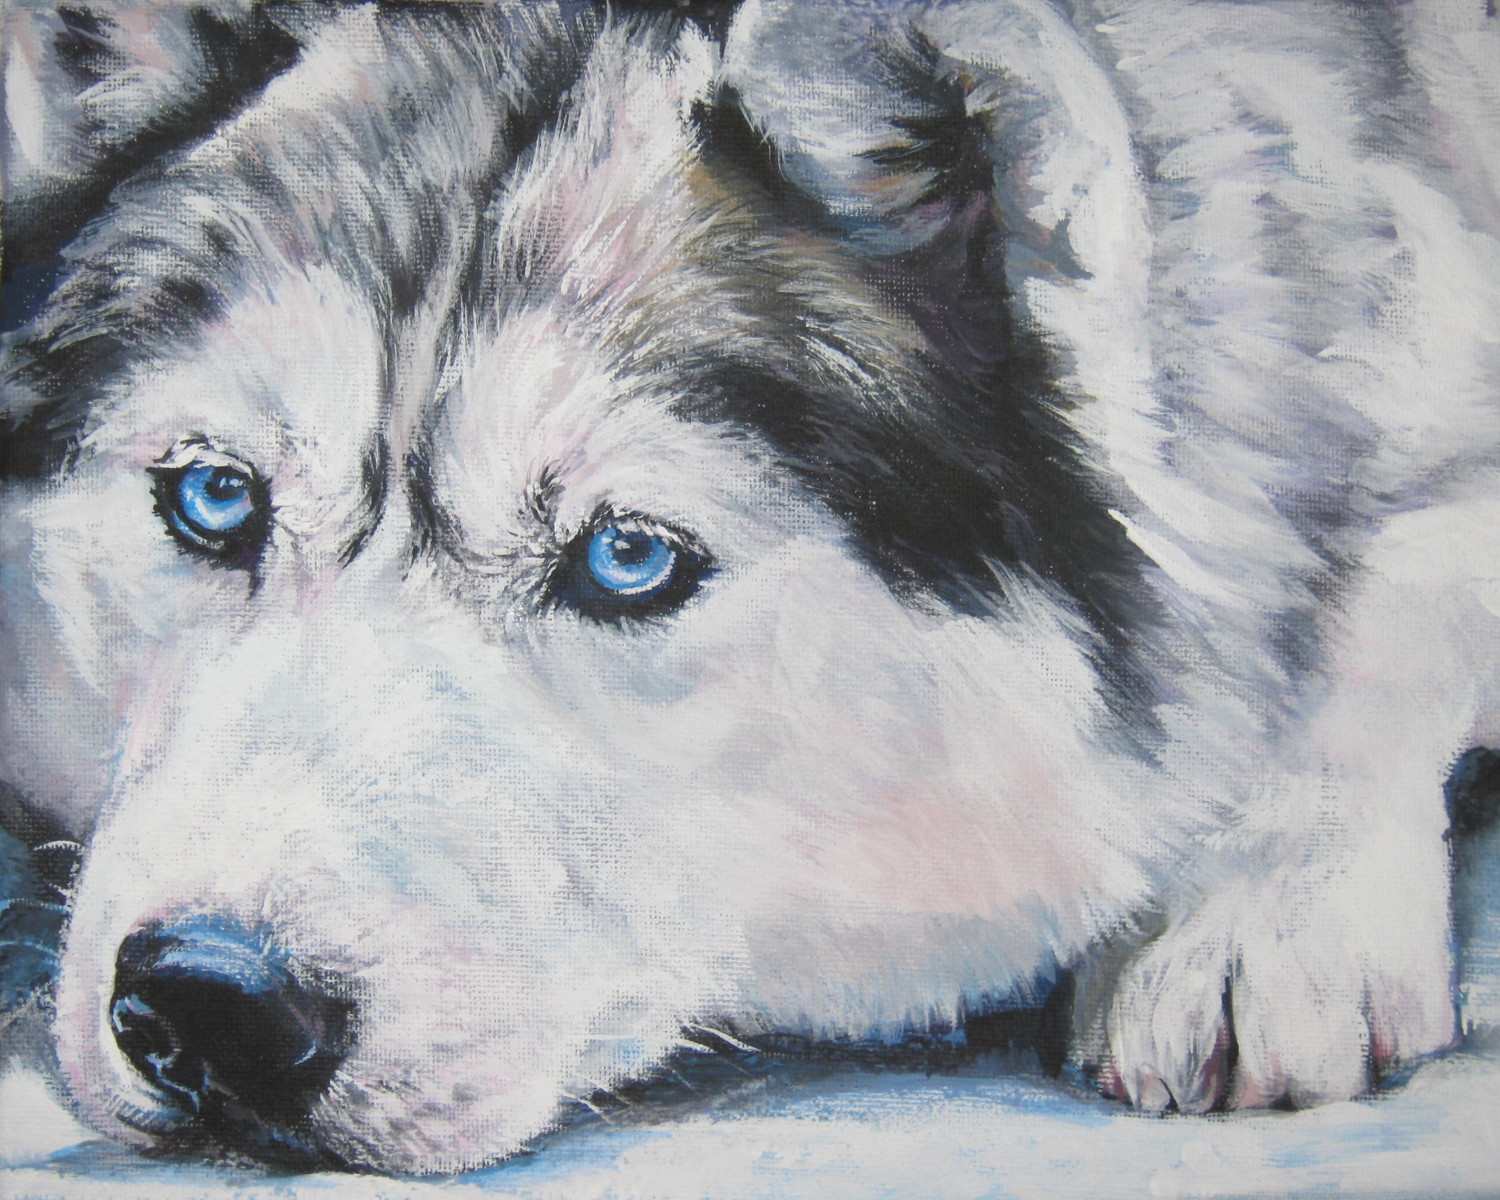 Drawn Siberian Husky dog  wallpaper